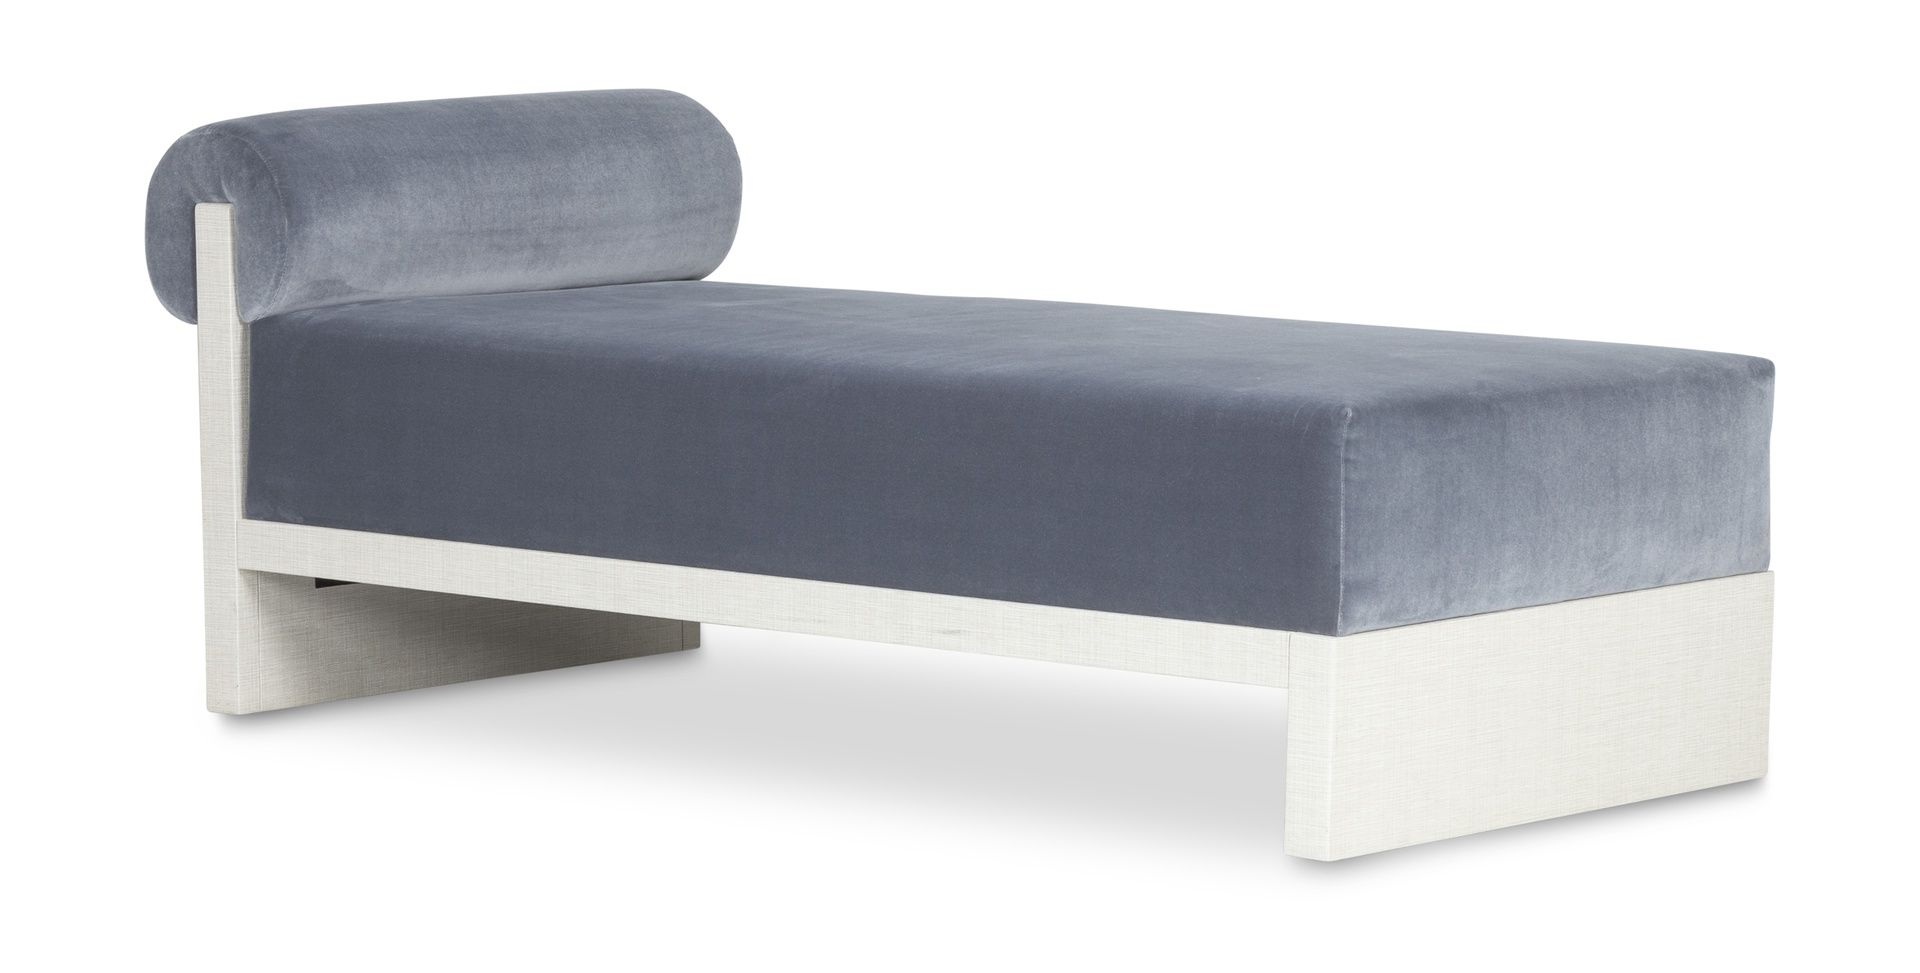 Montpellier Chaise Lounge Wrap Version Ej Victor Grey Chaise Lounge Chaise Lounge Upholstered Dining Side Chair